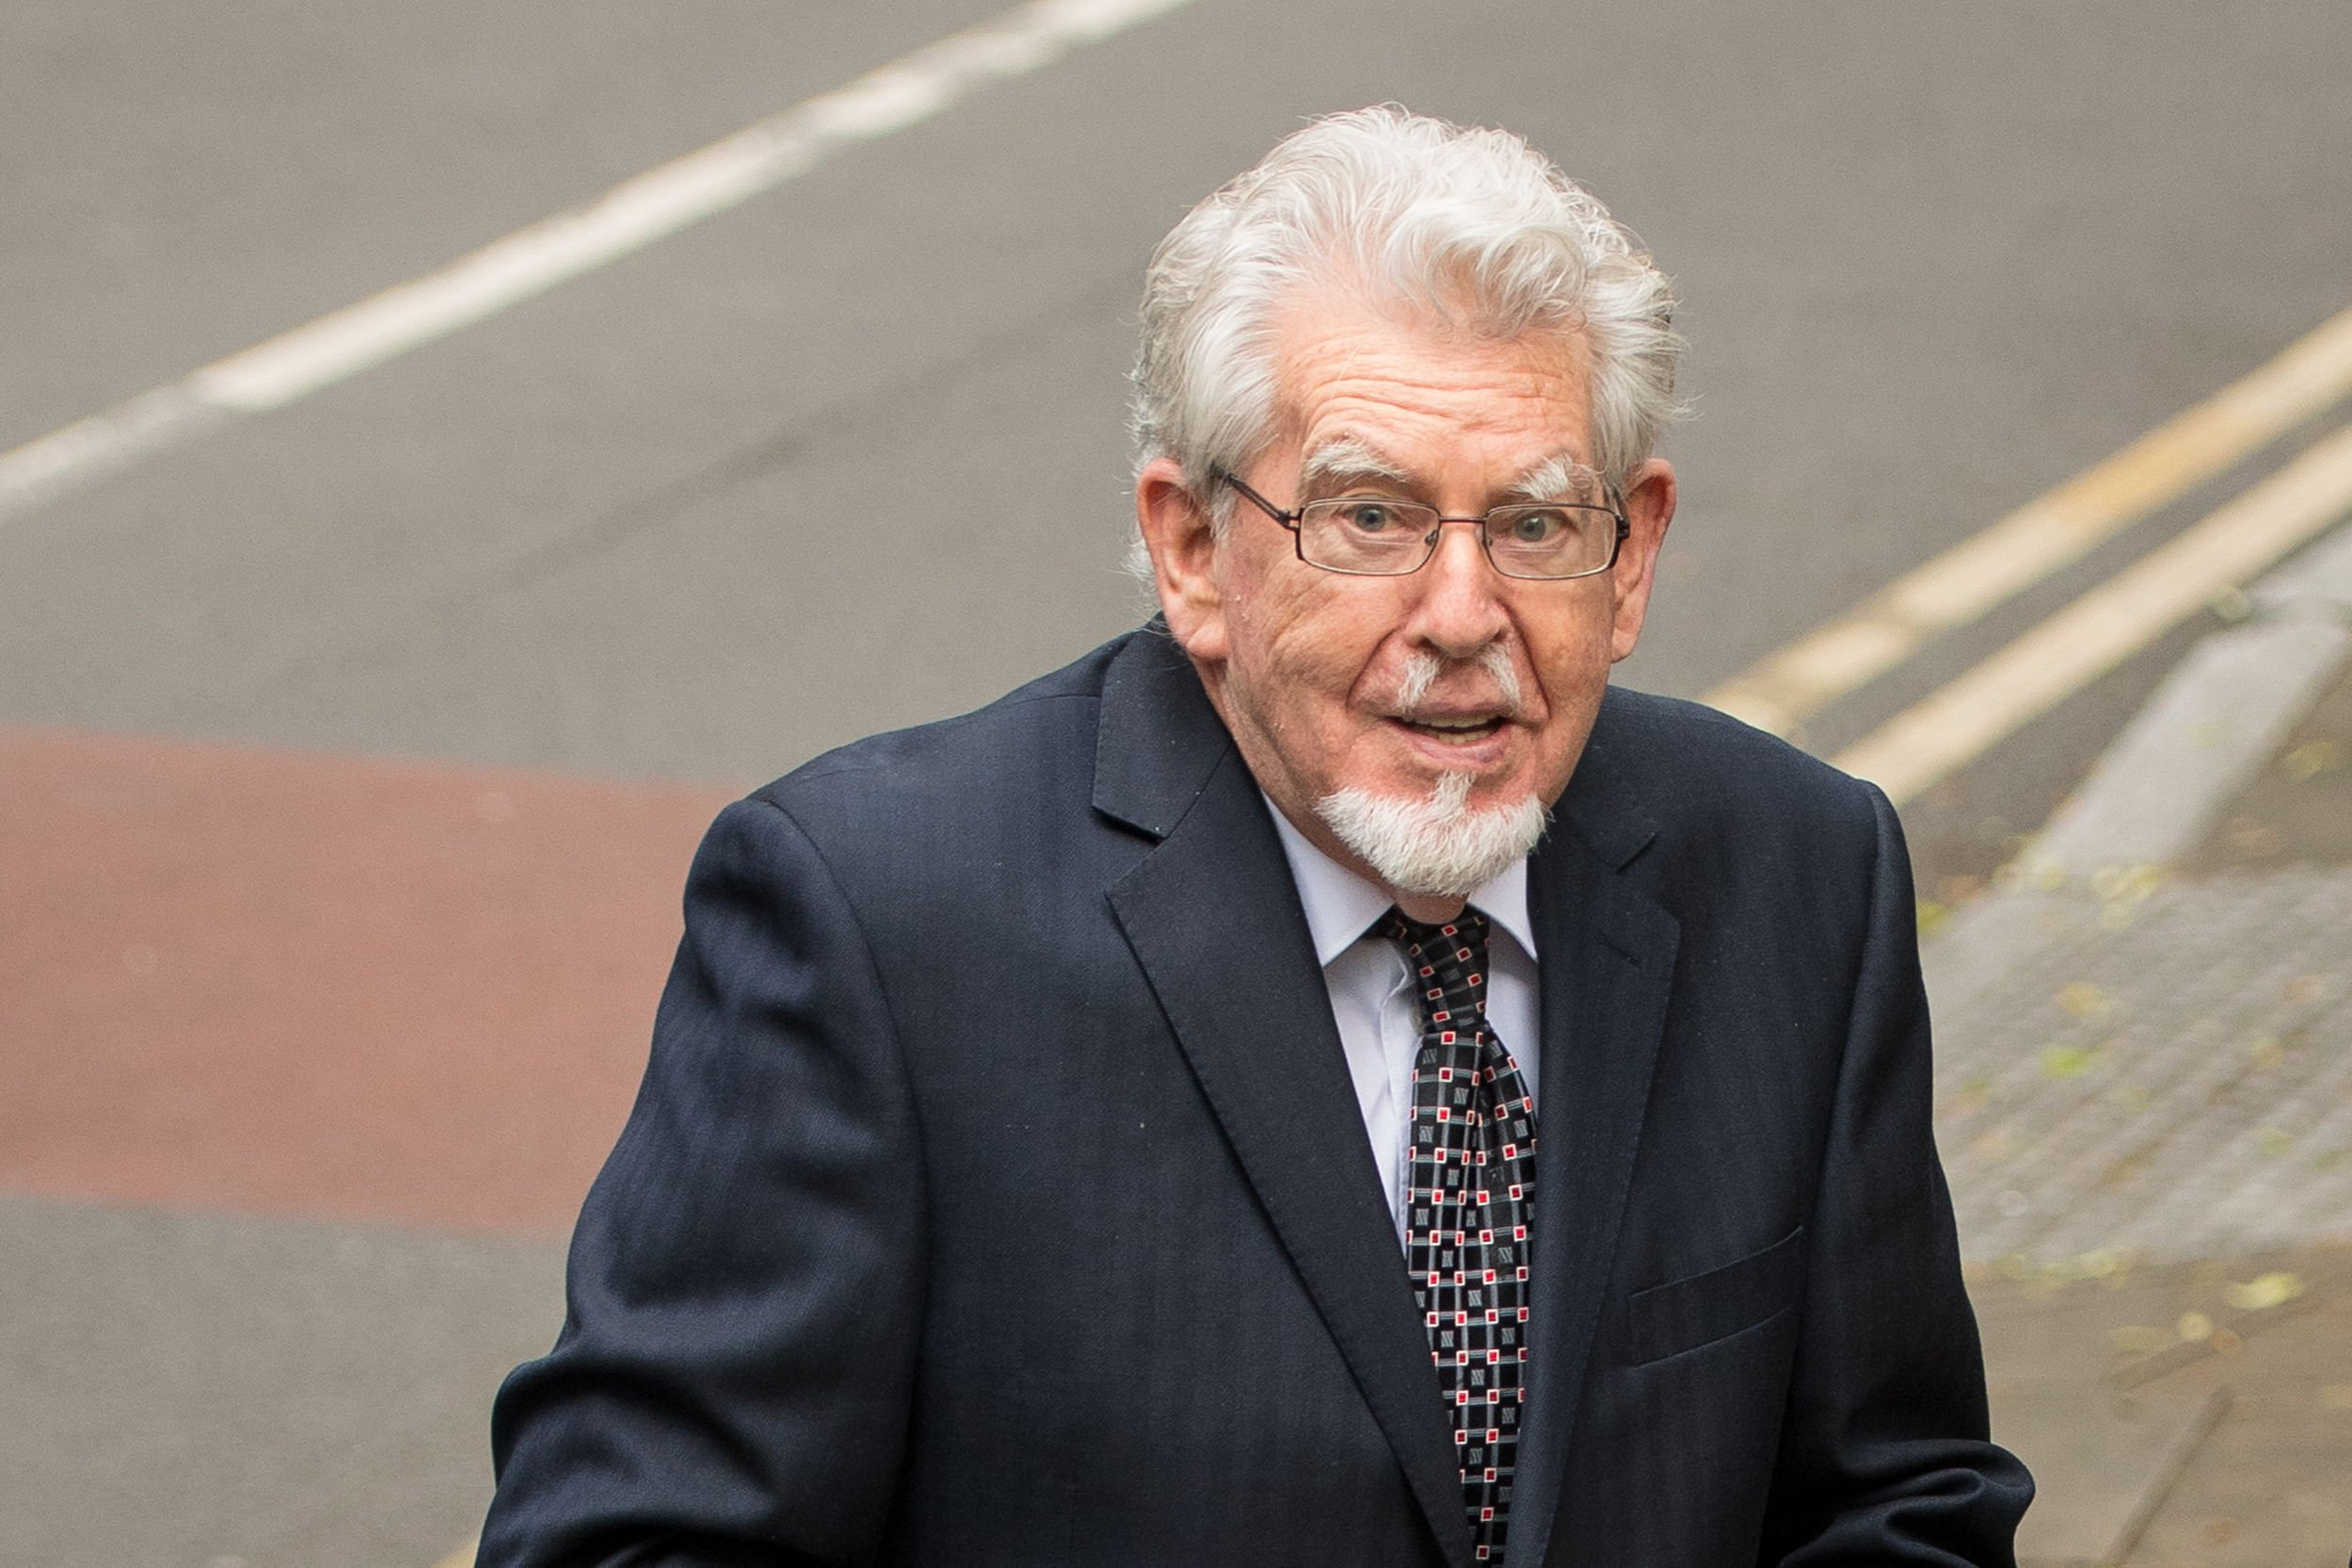 When was Rolf Harris released from prison and how much time did he serve?